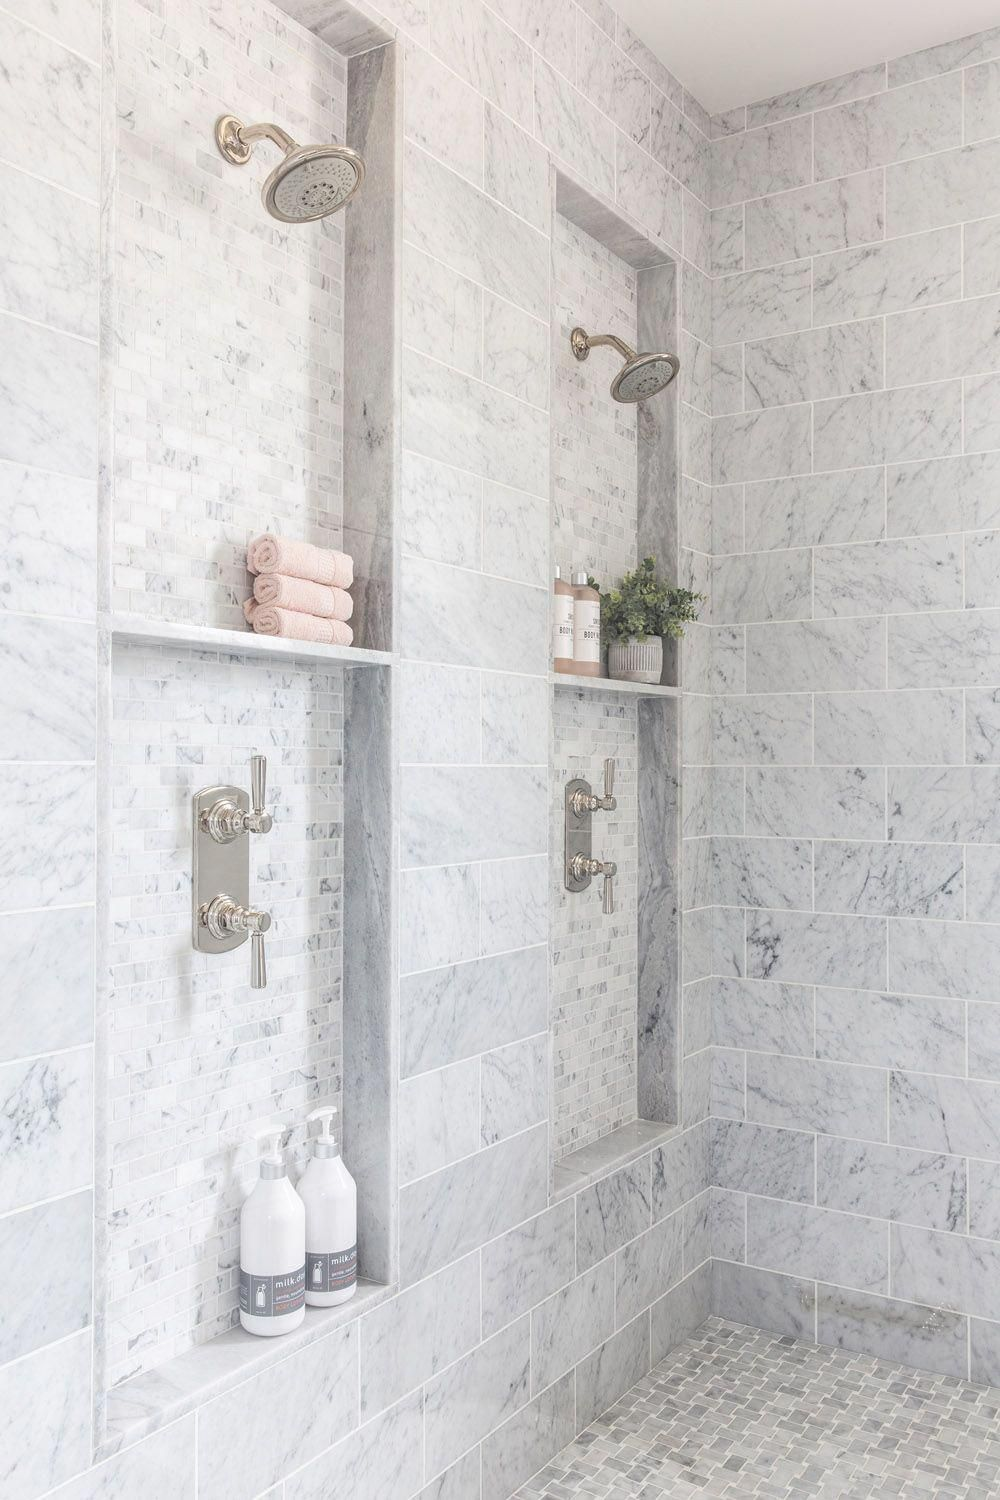 How Much Does A Kitchen Remodel Cost Bathroom Remodel Master Shower Niche Master Shower